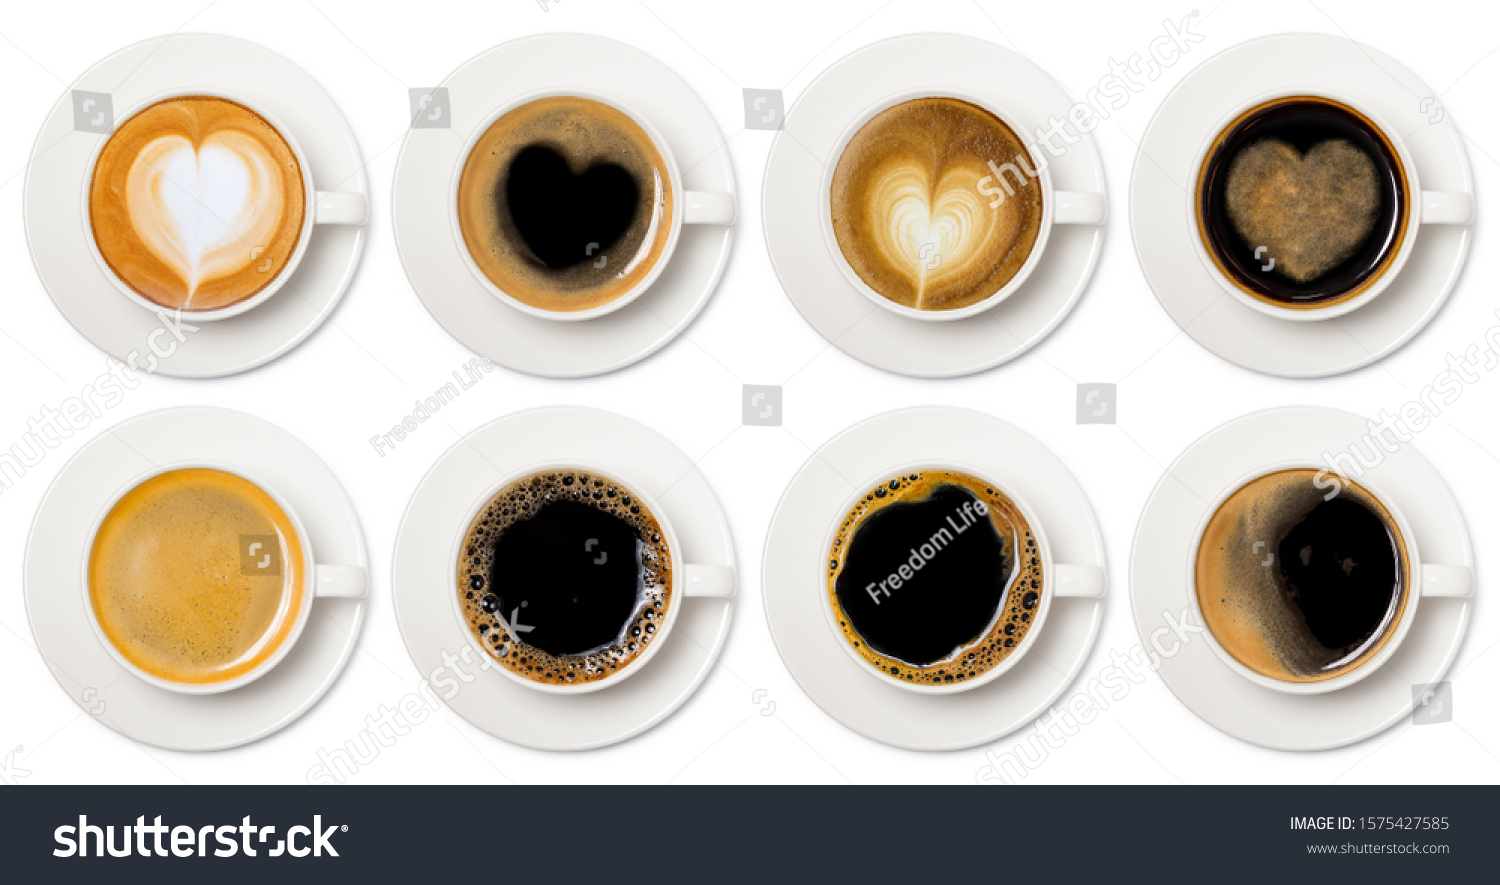 coffee cup assortment top view collection, coffee cup assortment with heart sign top view collection isolated on white background. #1575427585